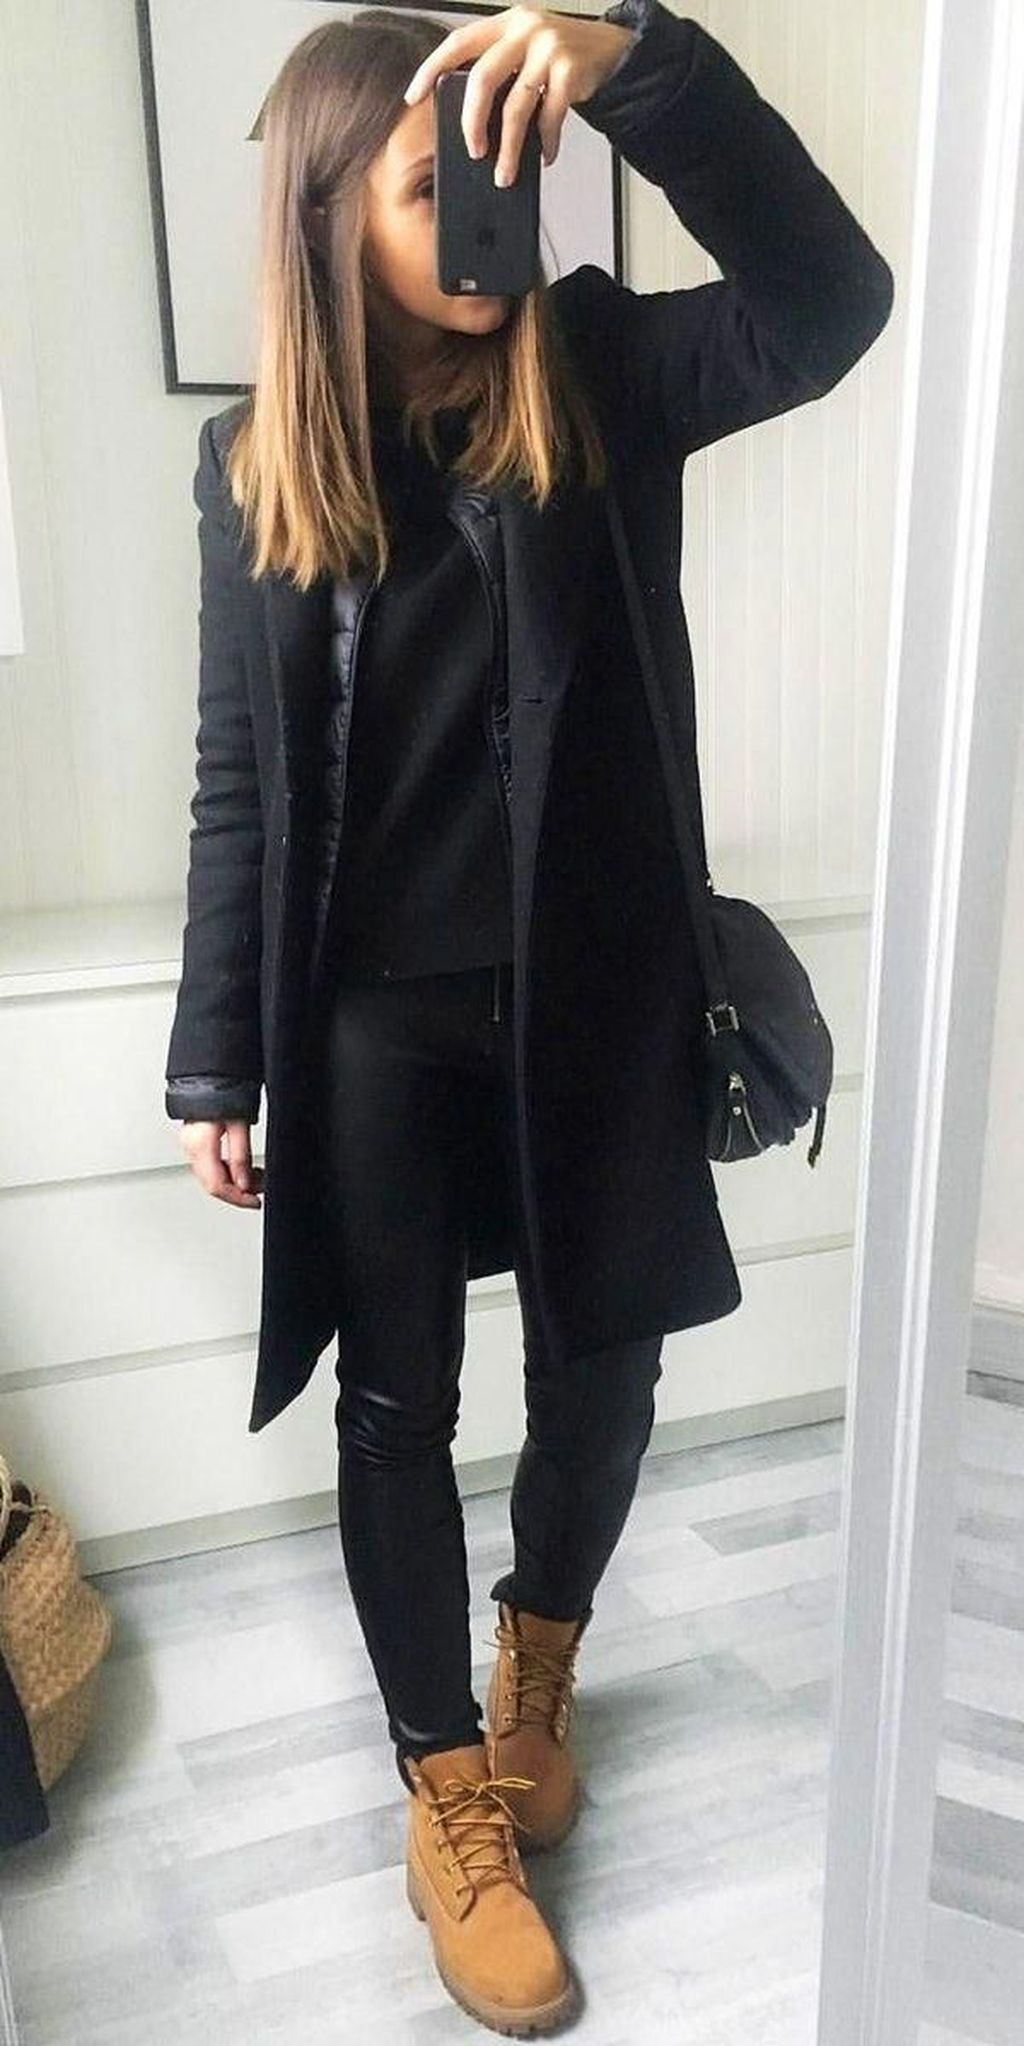 40+ Enchanting Women Winter Coats Outfits Ideas To Wear When Its Cold Outside #winteroutfitscold